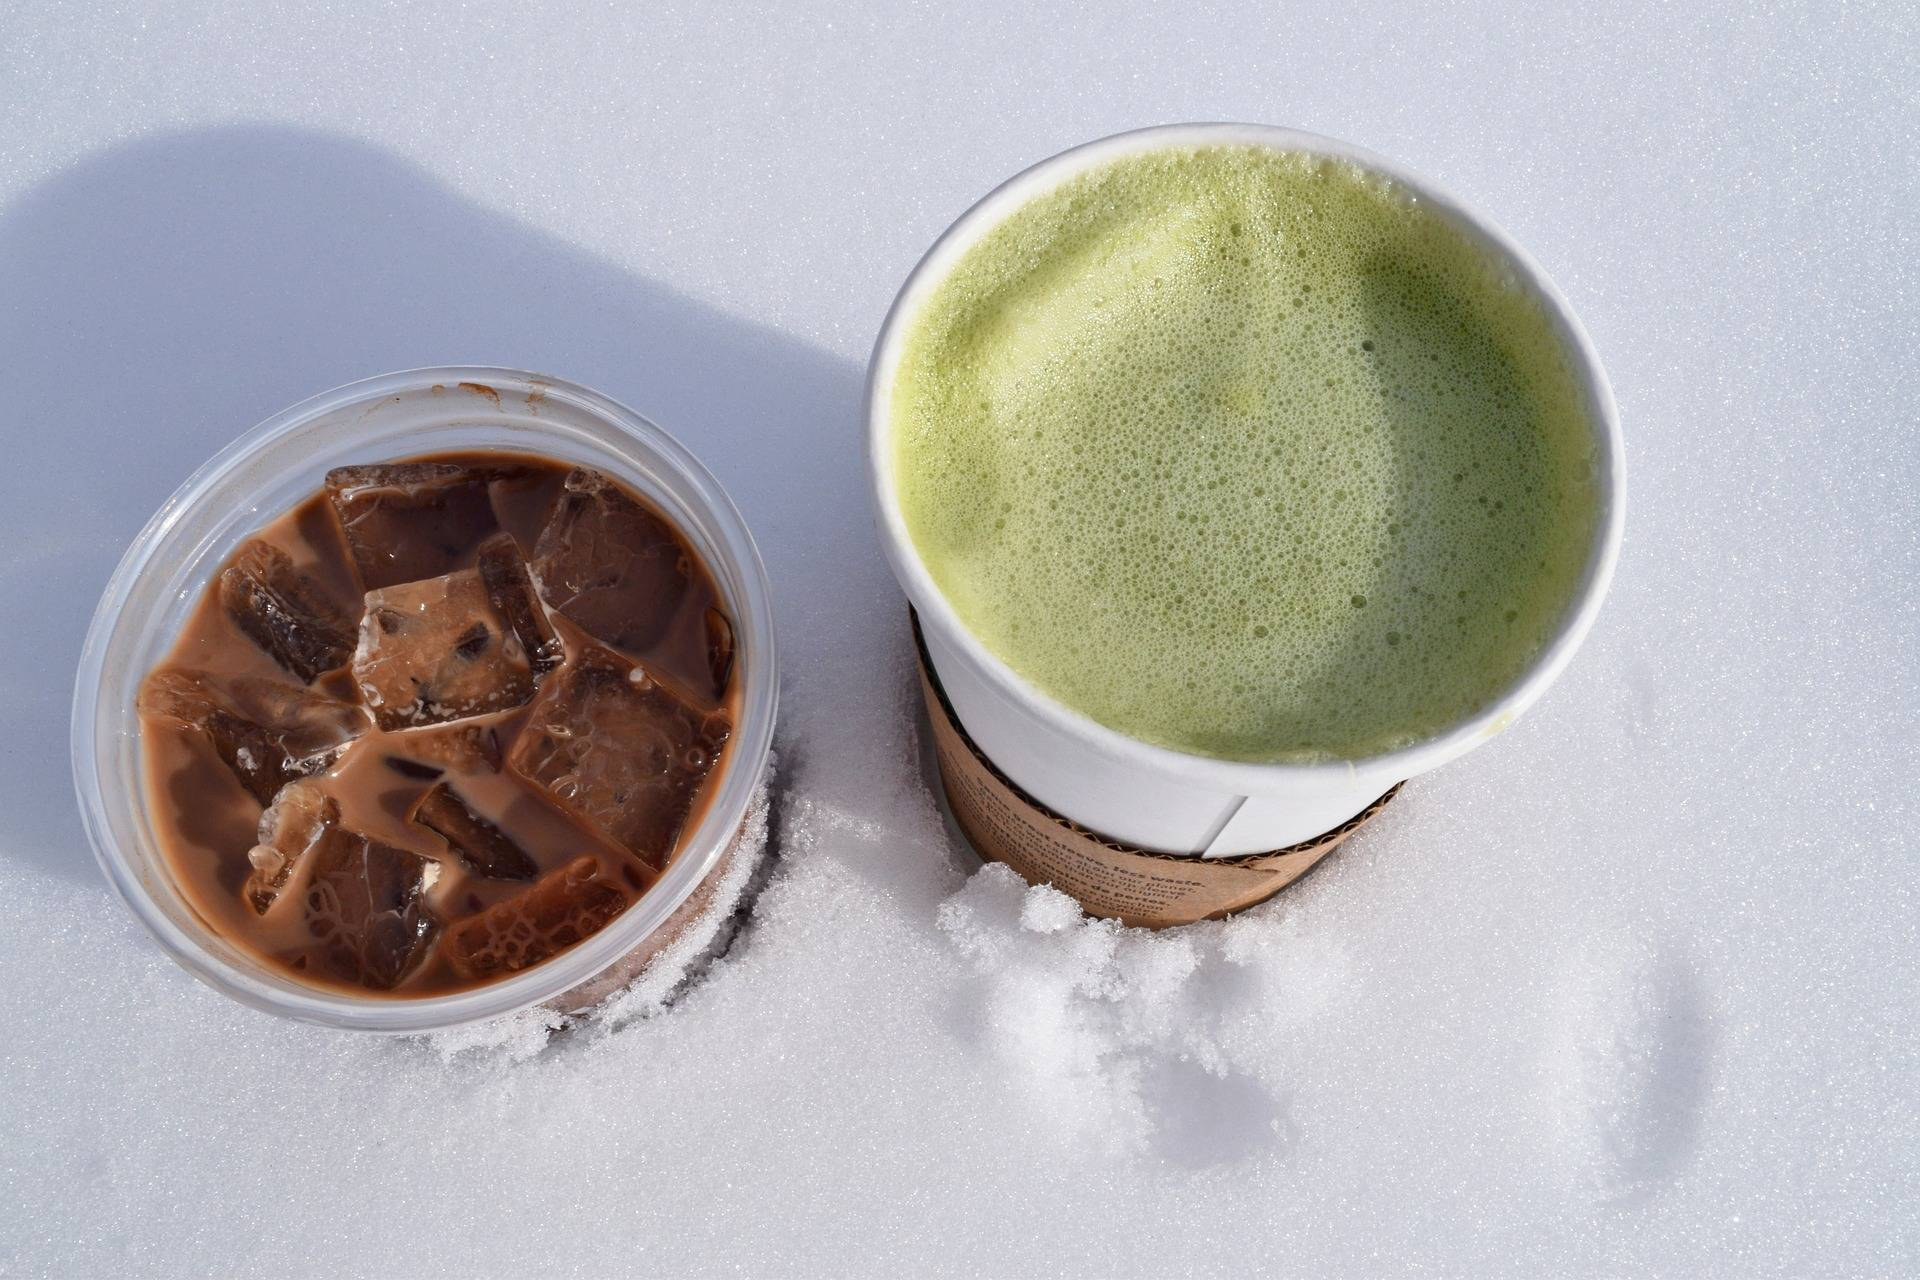 5 Amazing Starbucks Drinks For Less Than 100 Calories